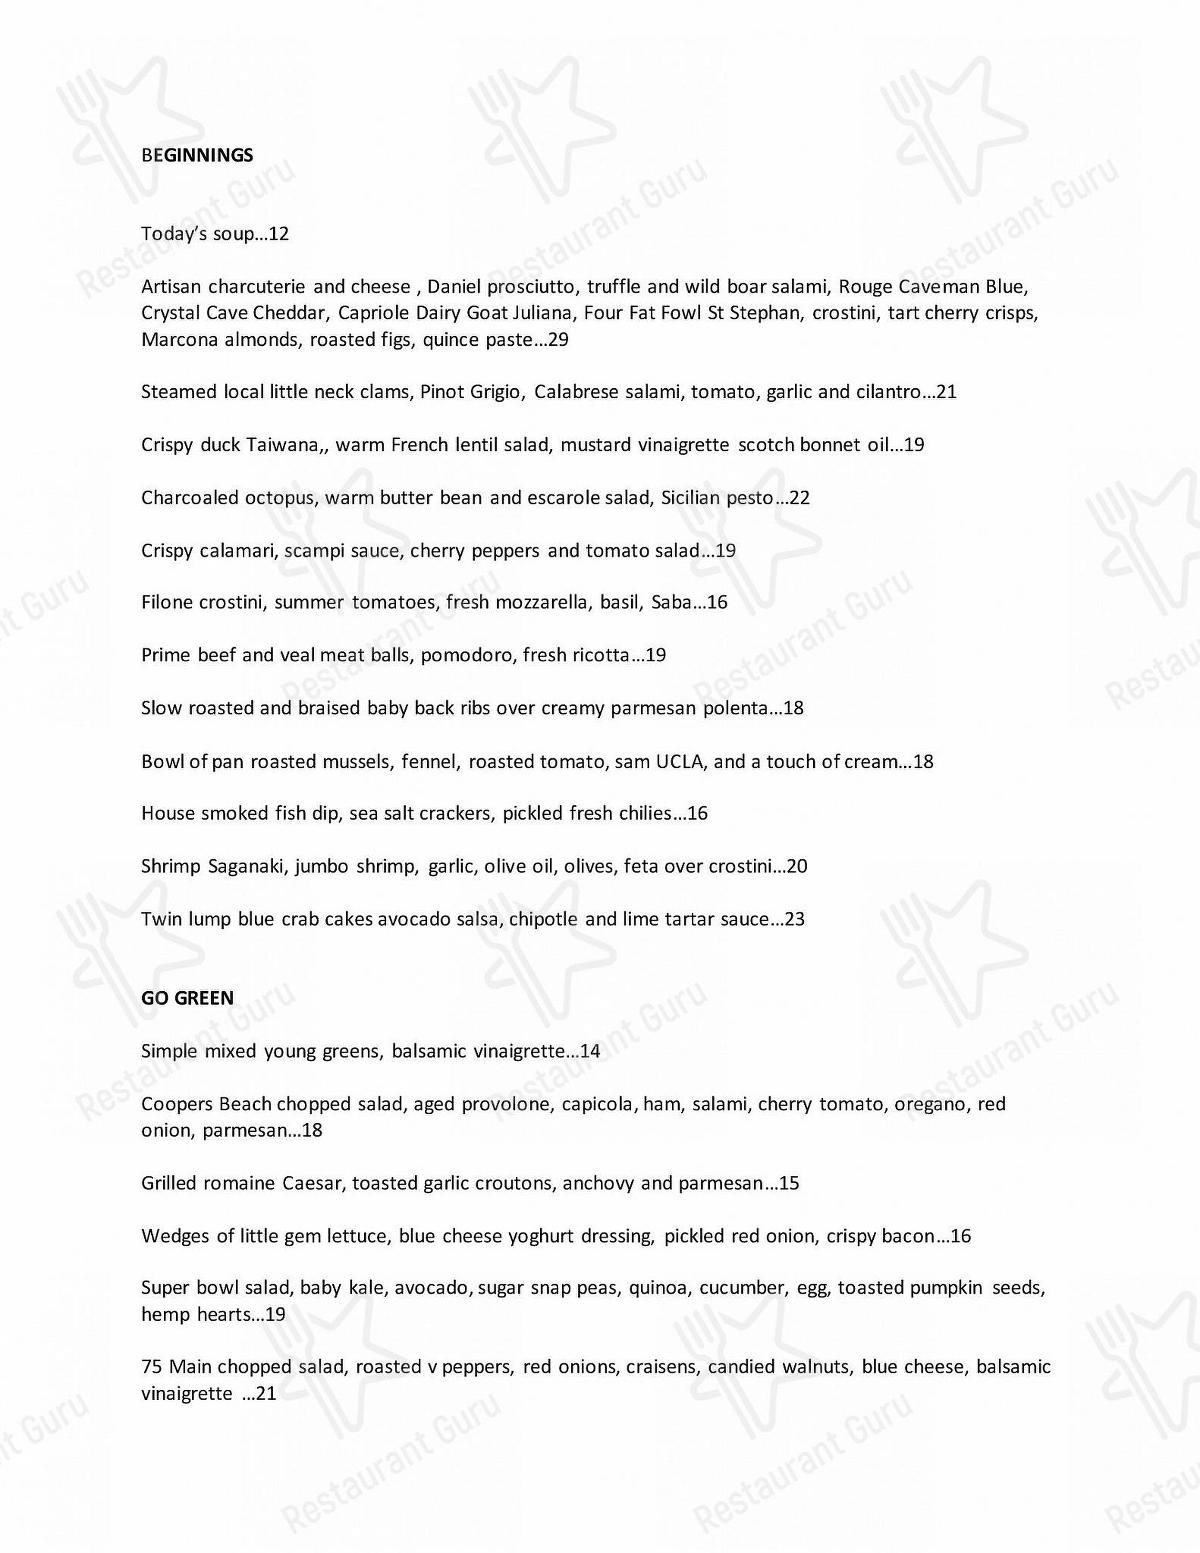 75 Main menu - dishes and beverages